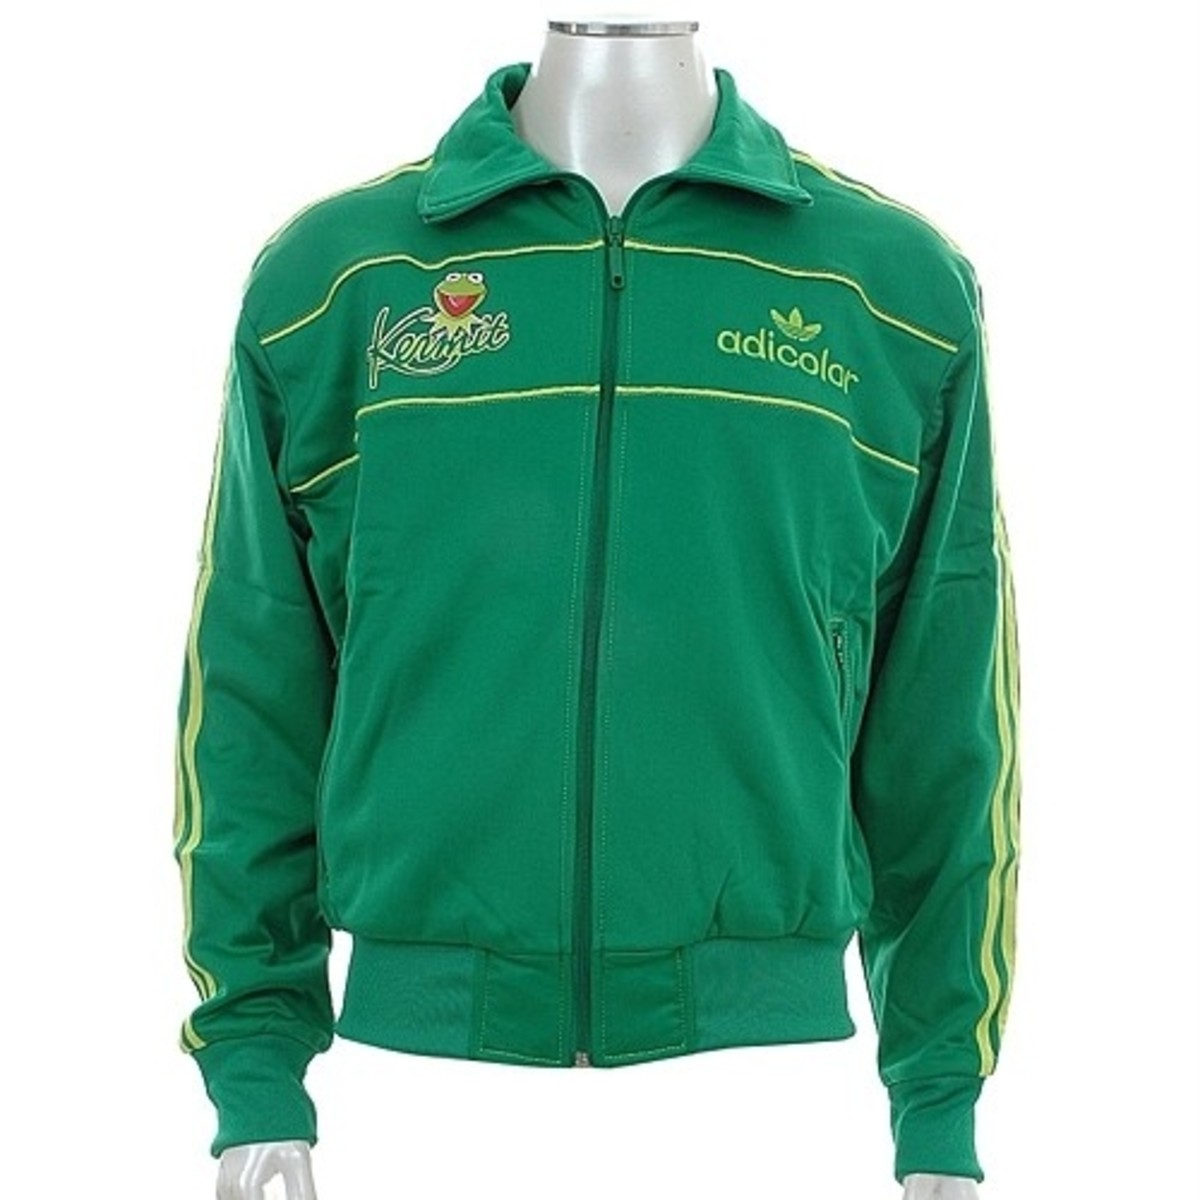 Kermit The Frog Adidas Track Jacket